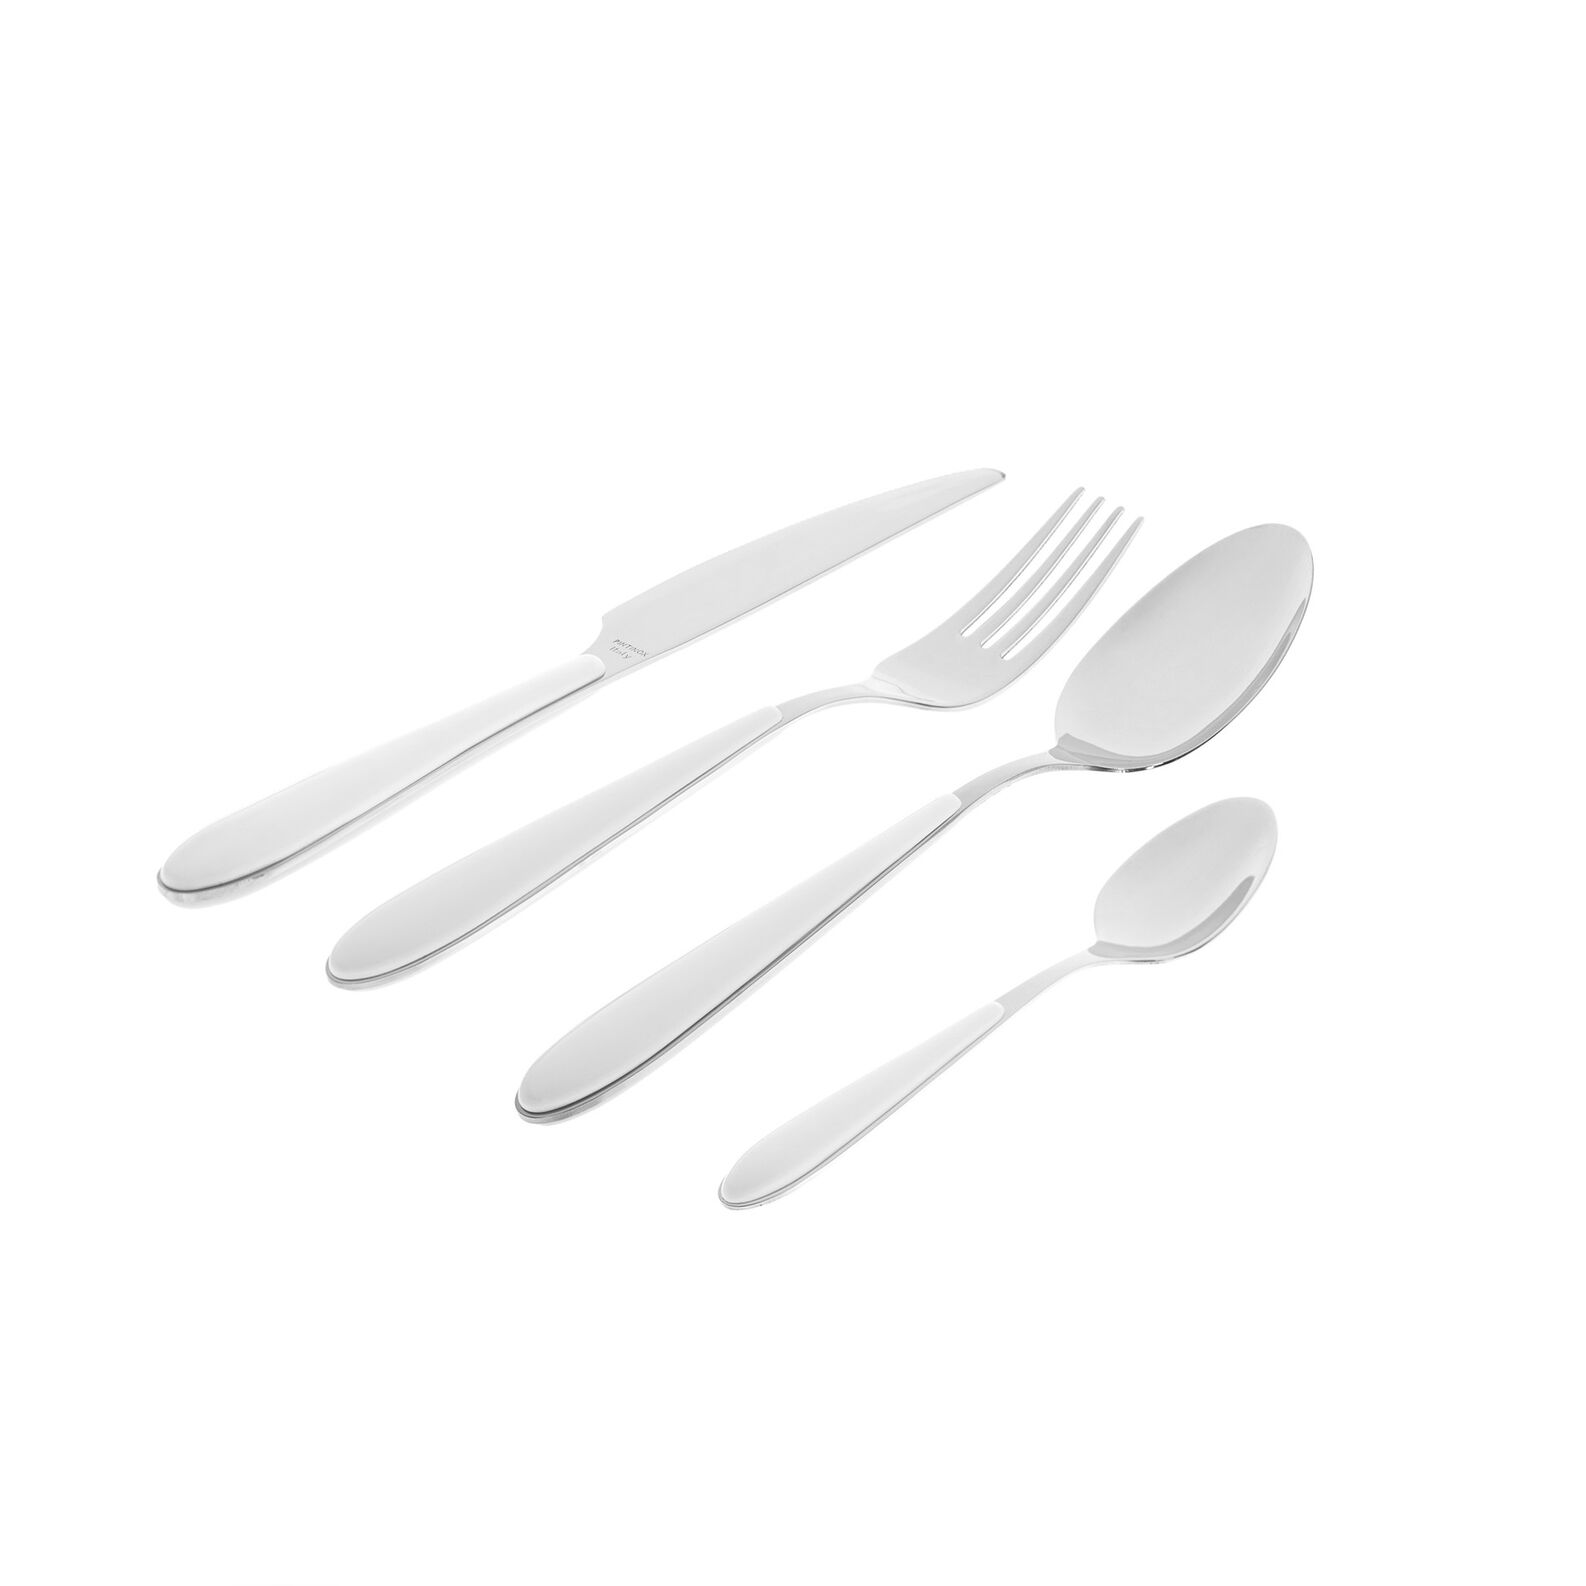 Stainless steel and plastic spoon